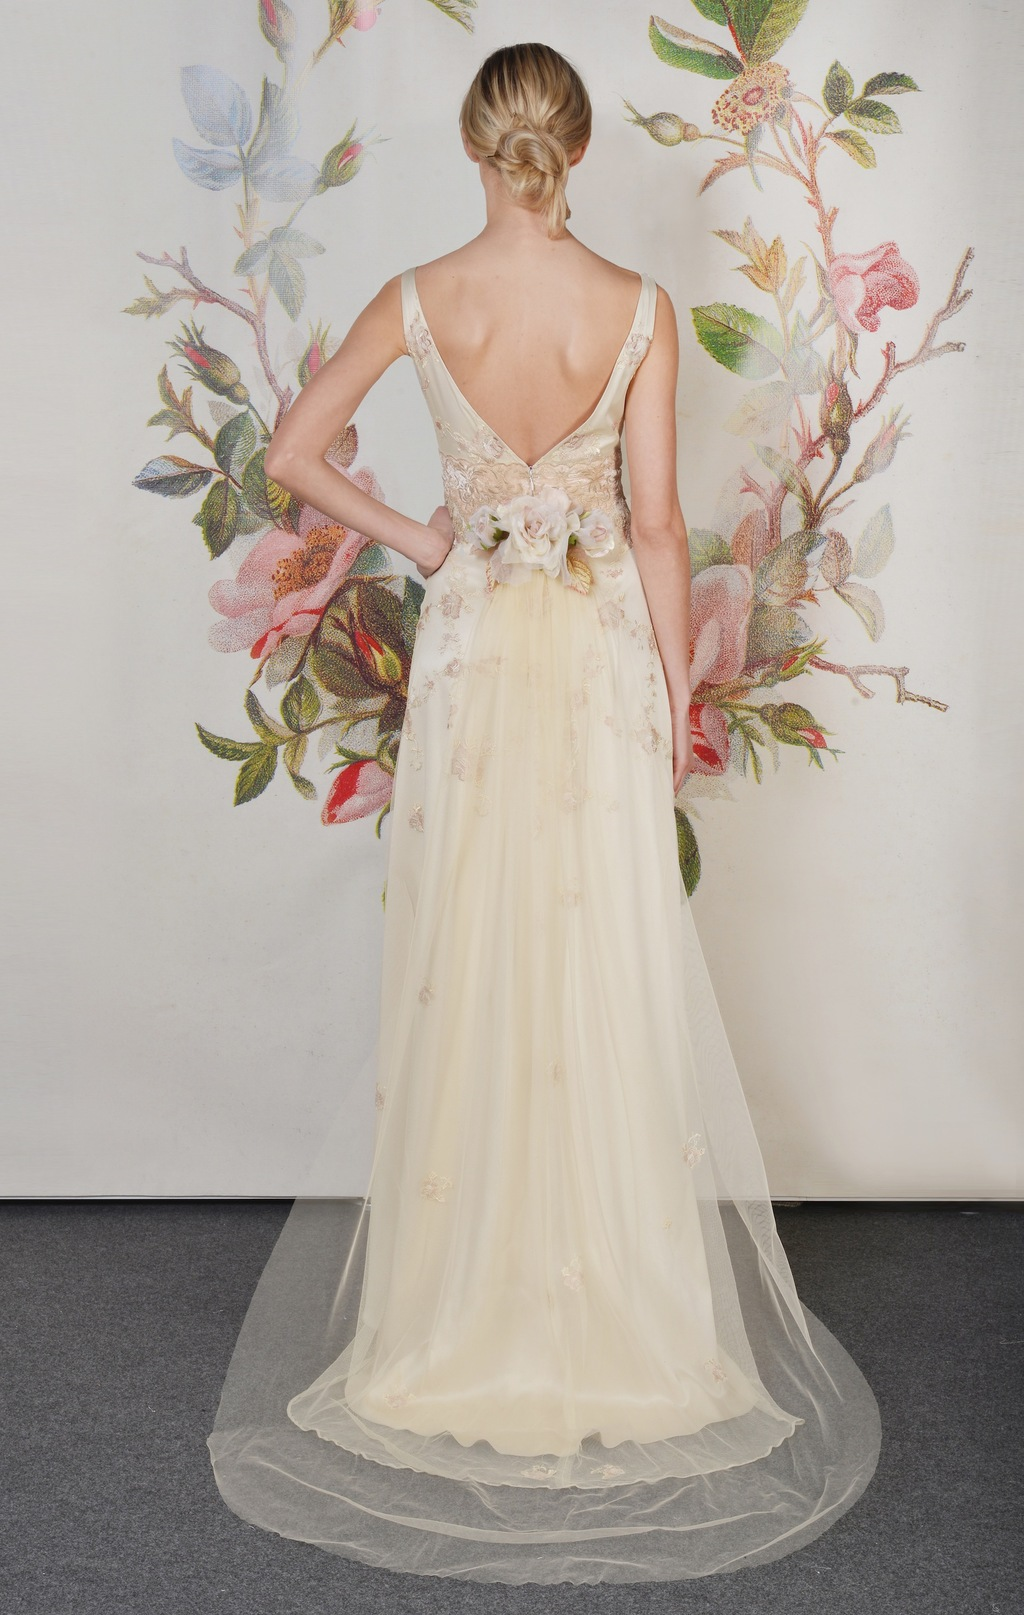 Claire Pettibone Spring Summer 2014 Wedding Dress Primrose f 01